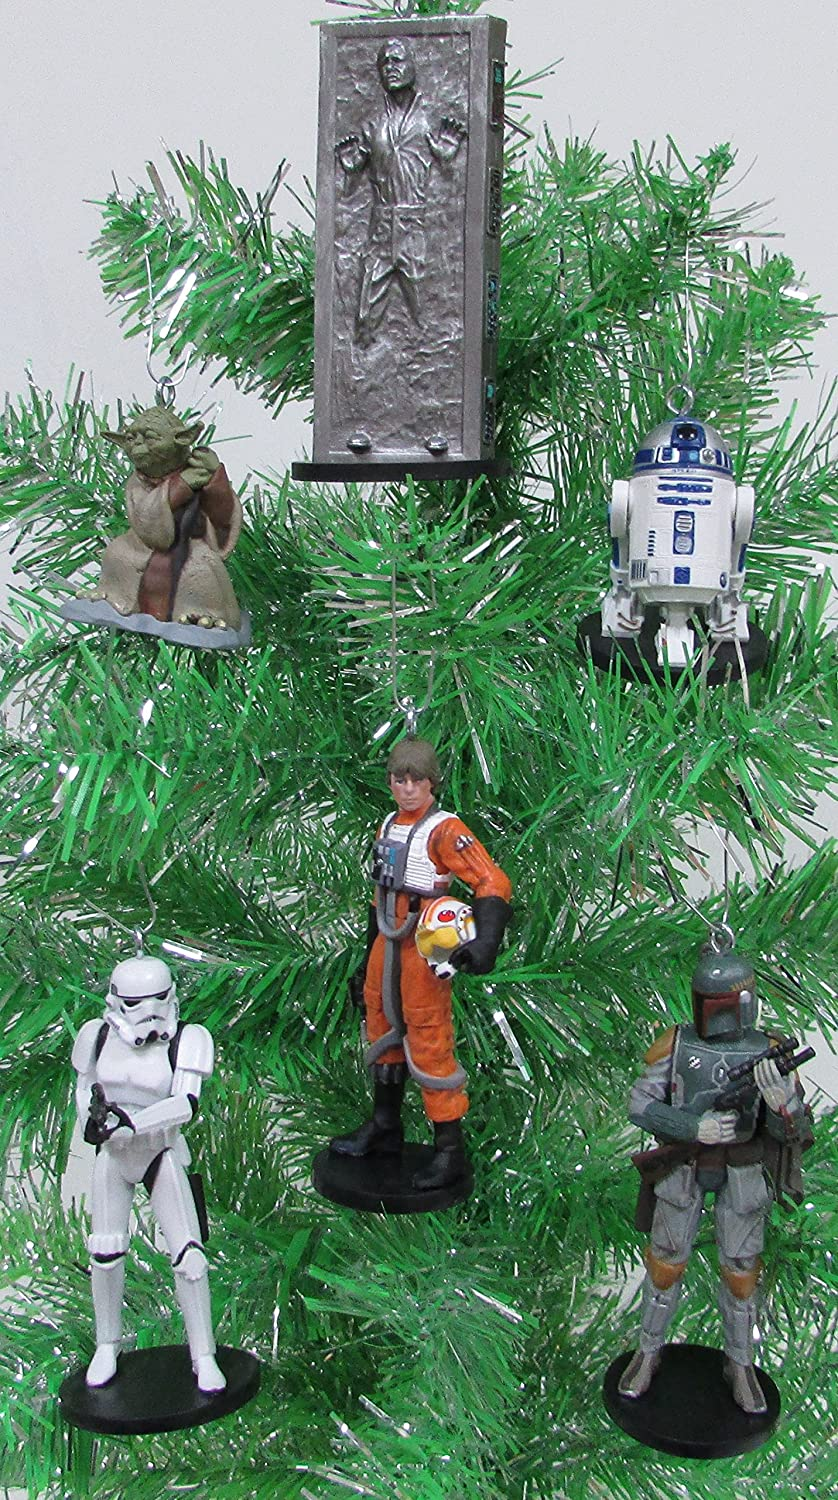 Star Wars The Empire Strikes Back 6 Piece Holiday Christmas Ornament Set Featuring Yoda Han Luke and Boba Fett Shatterproof Plastic Ornaments Range from 2 to 4 Tall Stormtrooper R2-D2